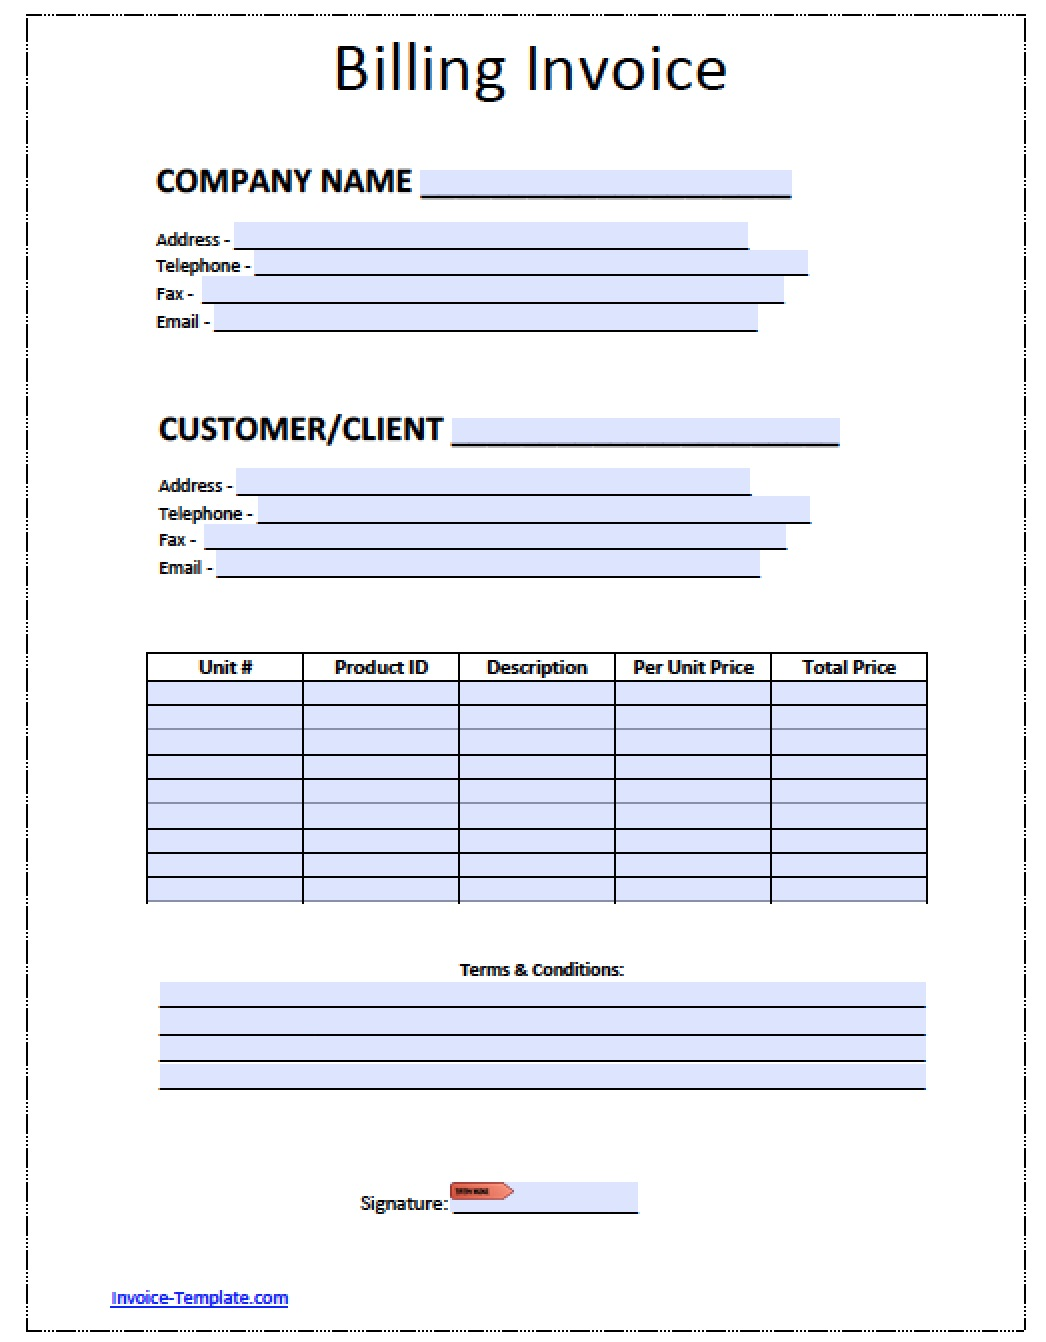 Shopdesignsus  Remarkable Billing Invoice Invoices Faq U Cloudflare Support Billing  With Inspiring Free Billing Invoice Template  Excel  Pdf  Word Doc  Billing With Attractive Invoice Template For Services Rendered Also How Much Over Invoice Should You Pay For A Car In Addition Invoice Contractor And Invoice Header As Well As How To Invoice Paypal Additionally Honda Odyssey Invoice From Happytomco With Shopdesignsus  Inspiring Billing Invoice Invoices Faq U Cloudflare Support Billing  With Attractive Free Billing Invoice Template  Excel  Pdf  Word Doc  Billing And Remarkable Invoice Template For Services Rendered Also How Much Over Invoice Should You Pay For A Car In Addition Invoice Contractor From Happytomco